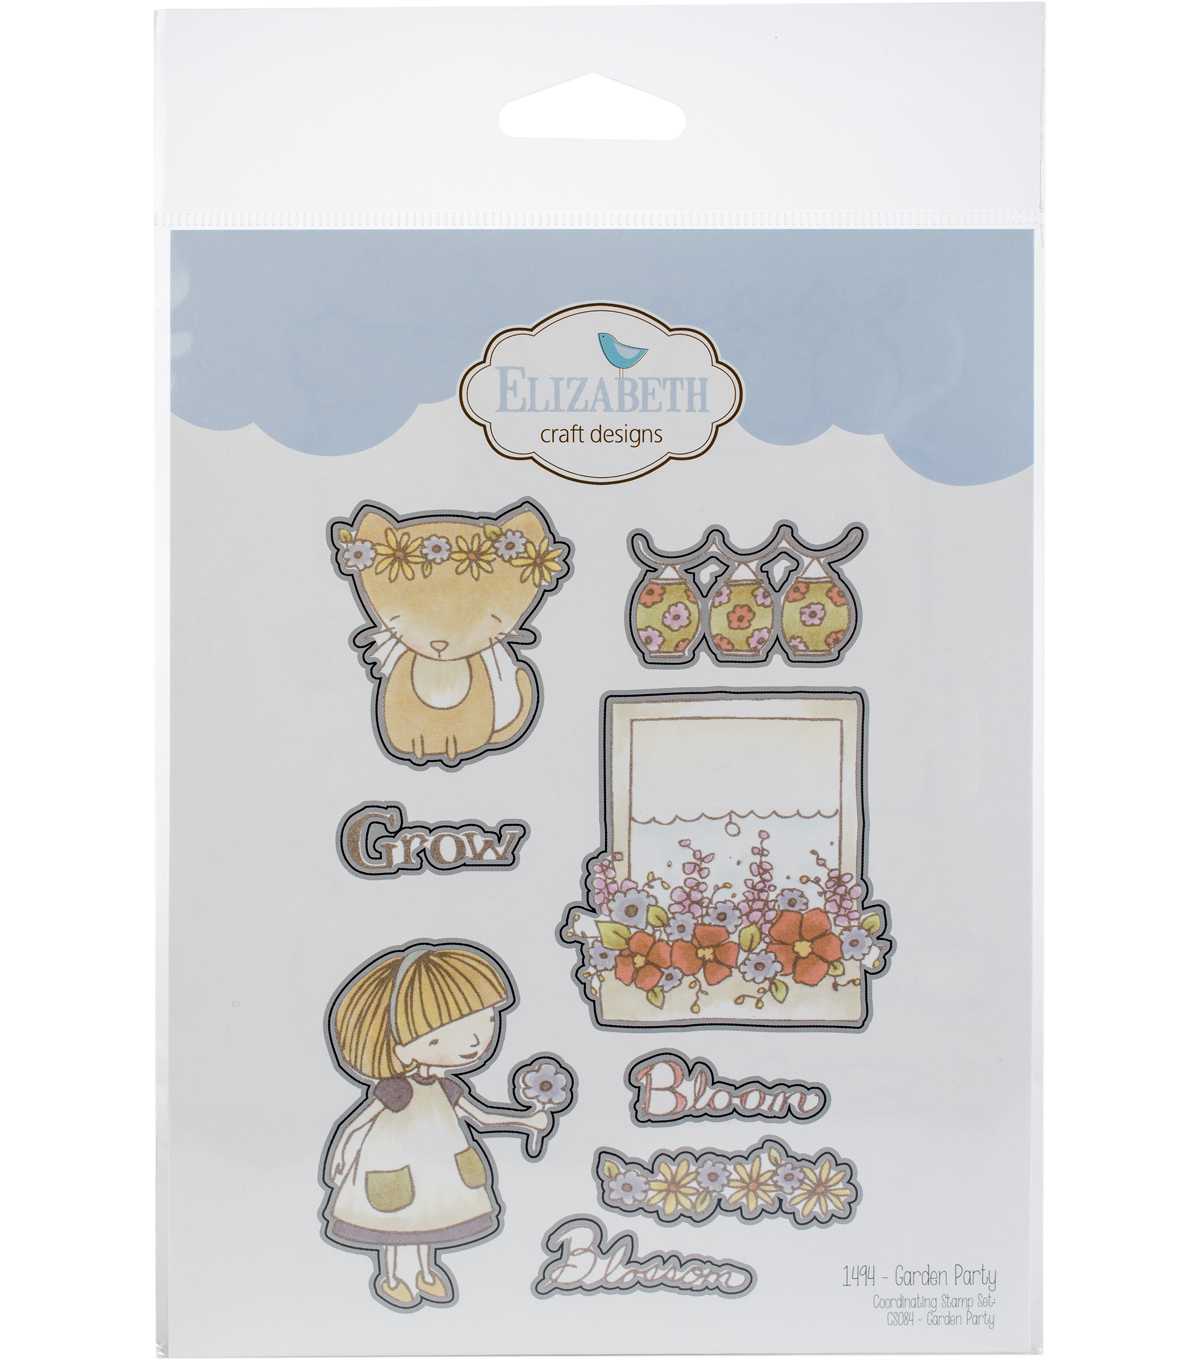 Elizabeth Craft Designs 8 pk Metal Dies-Garden Party